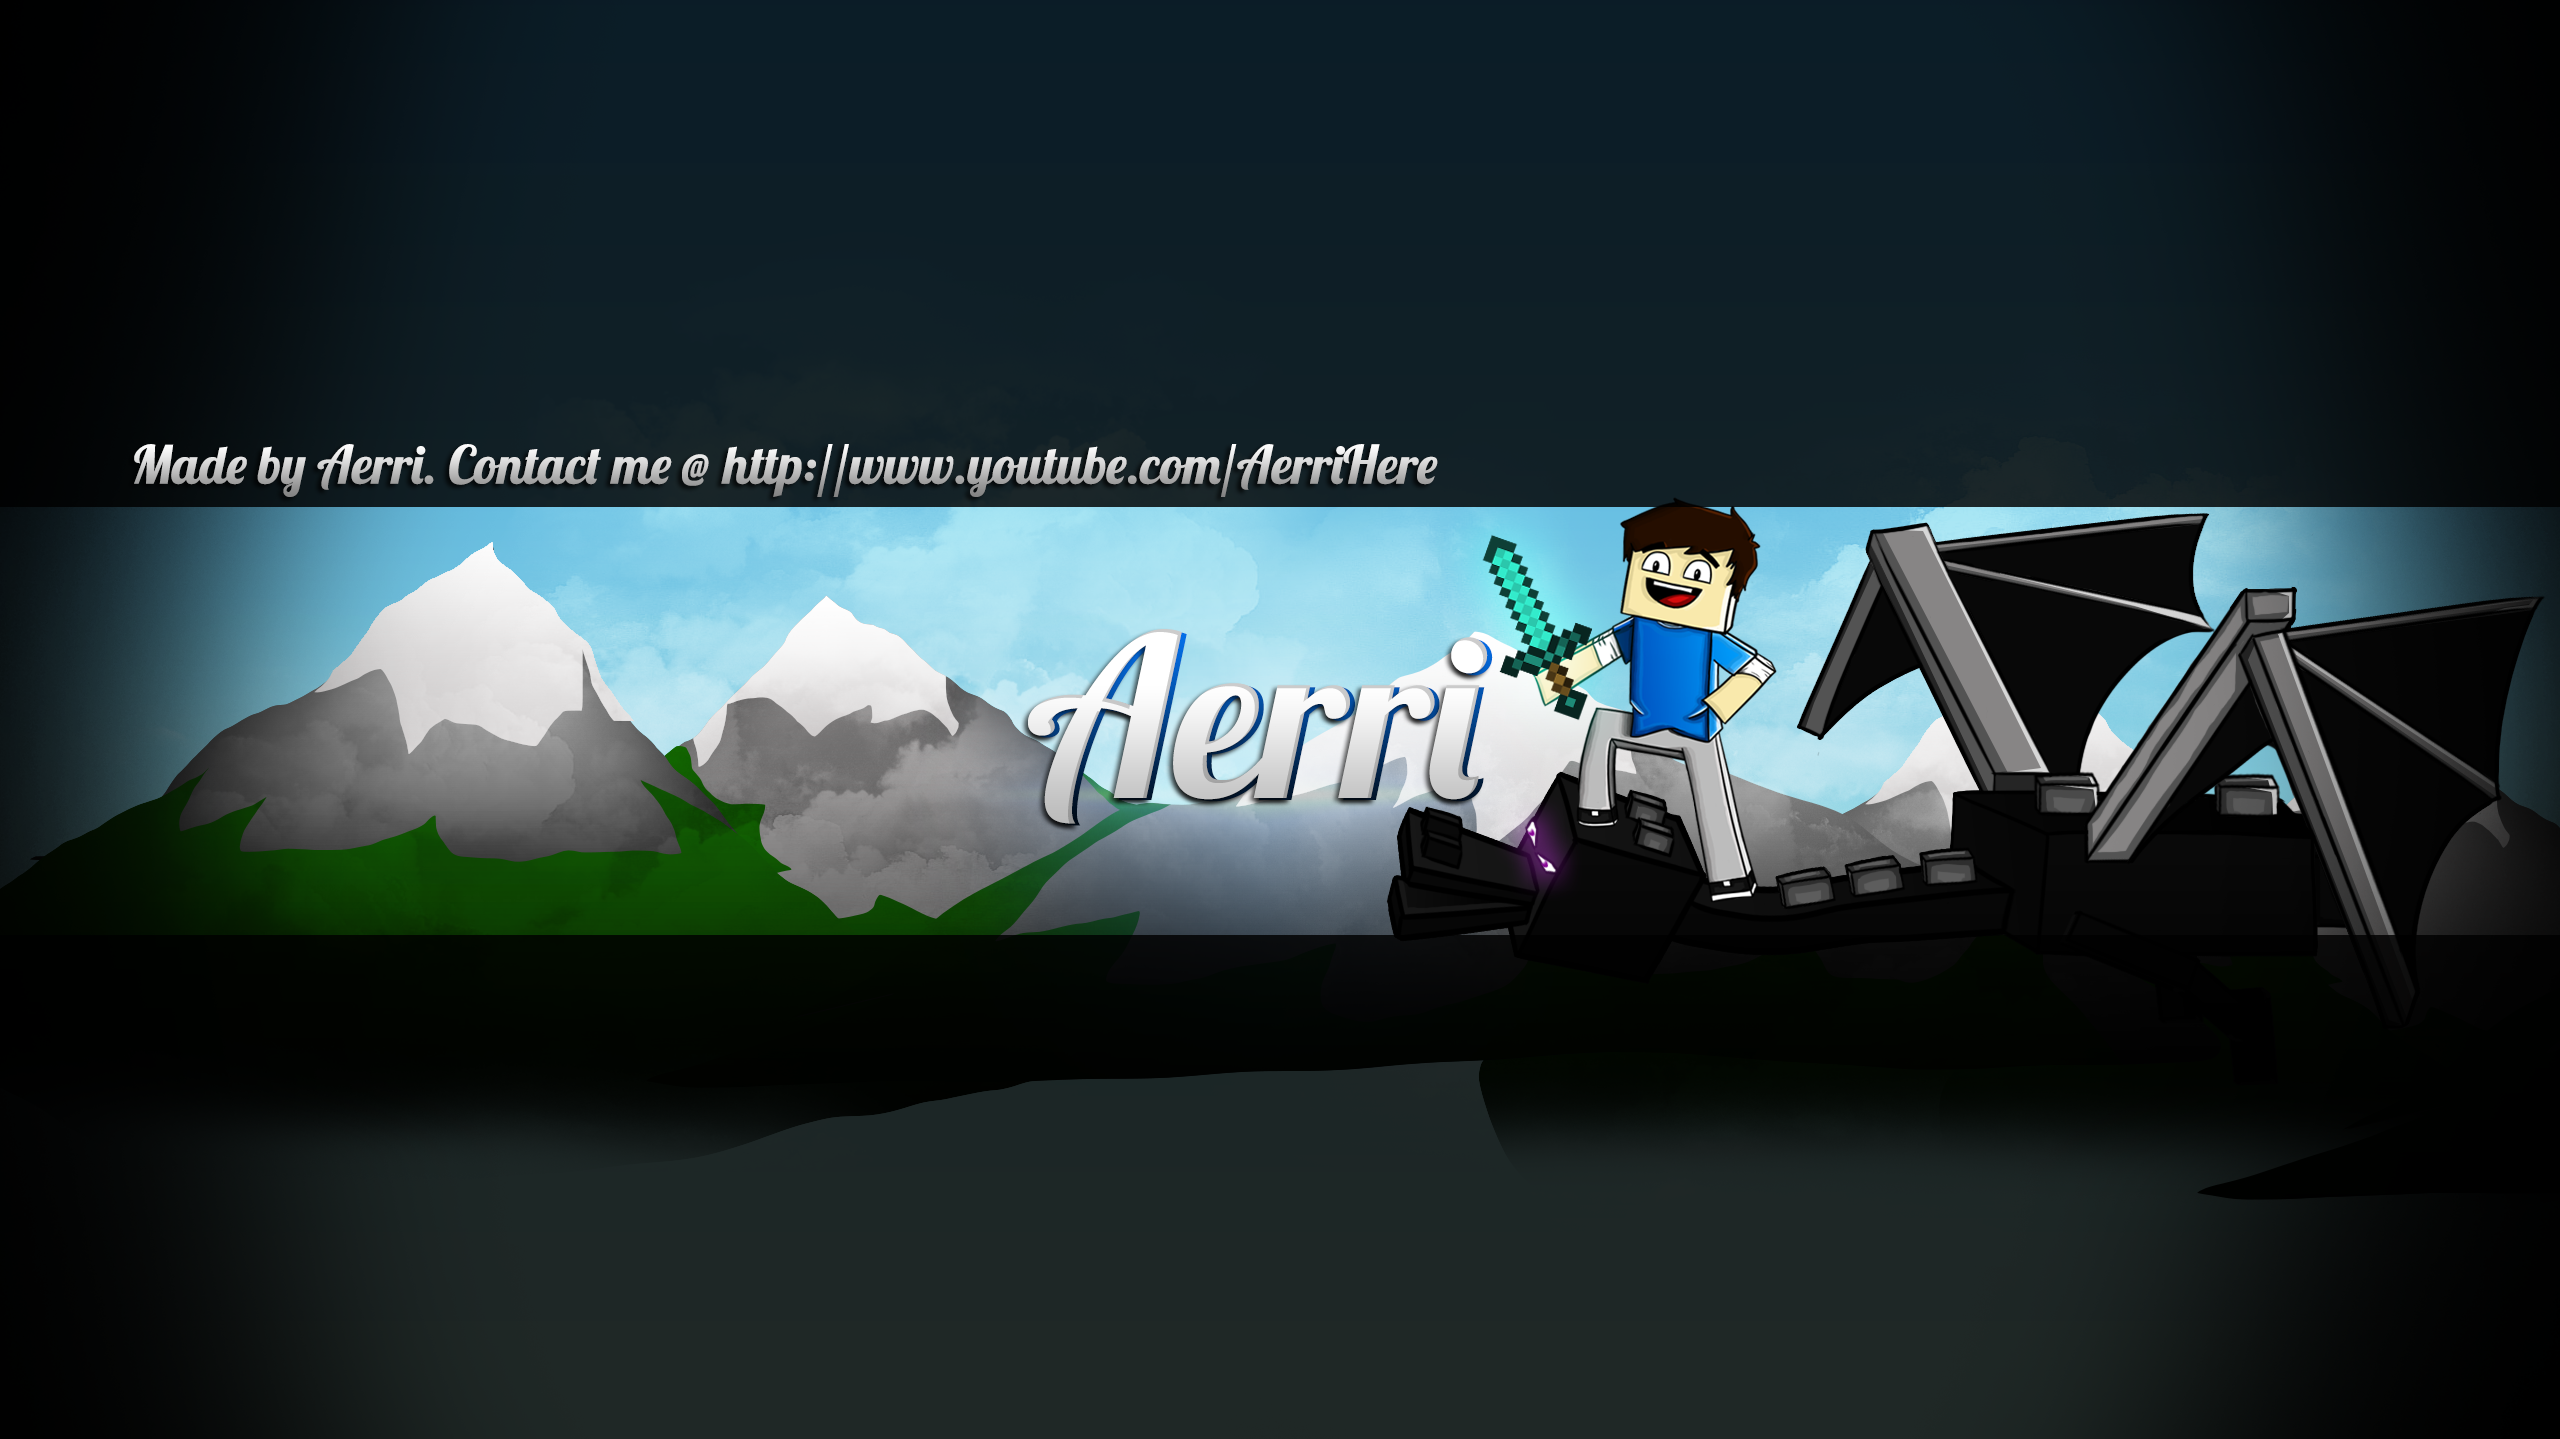 cool banner for youtube